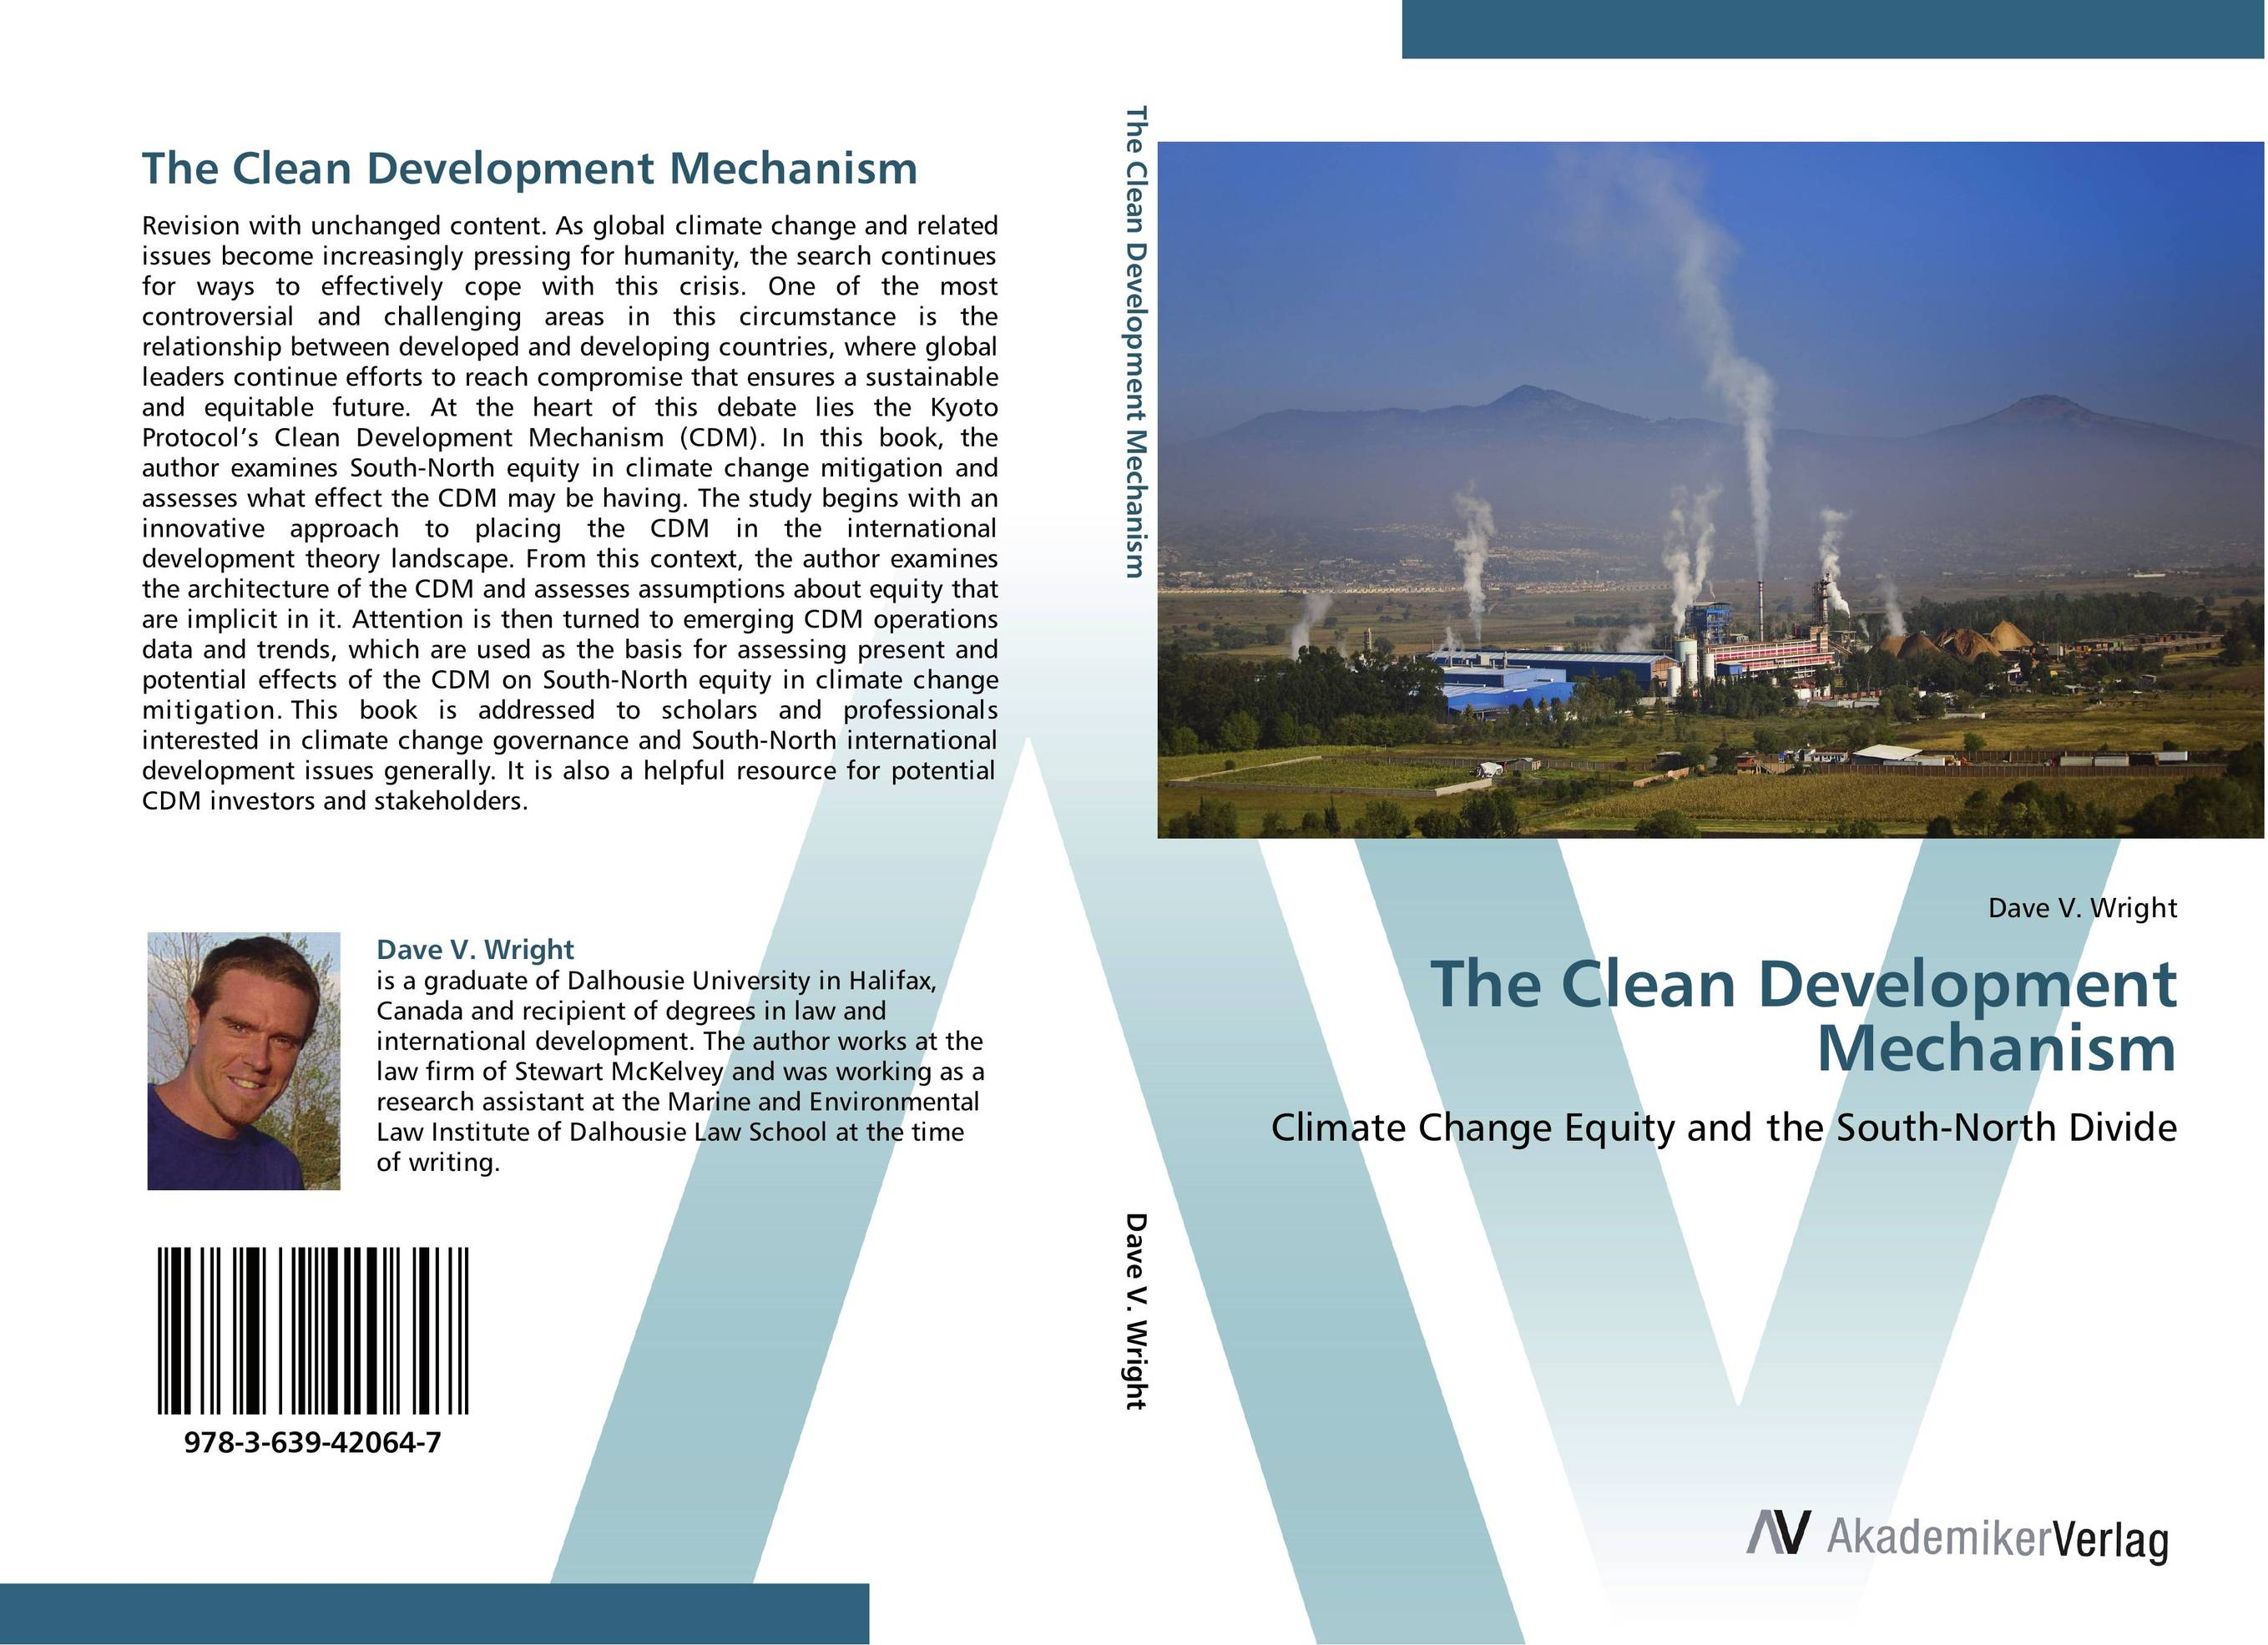 The Clean Development Mechanism north and south